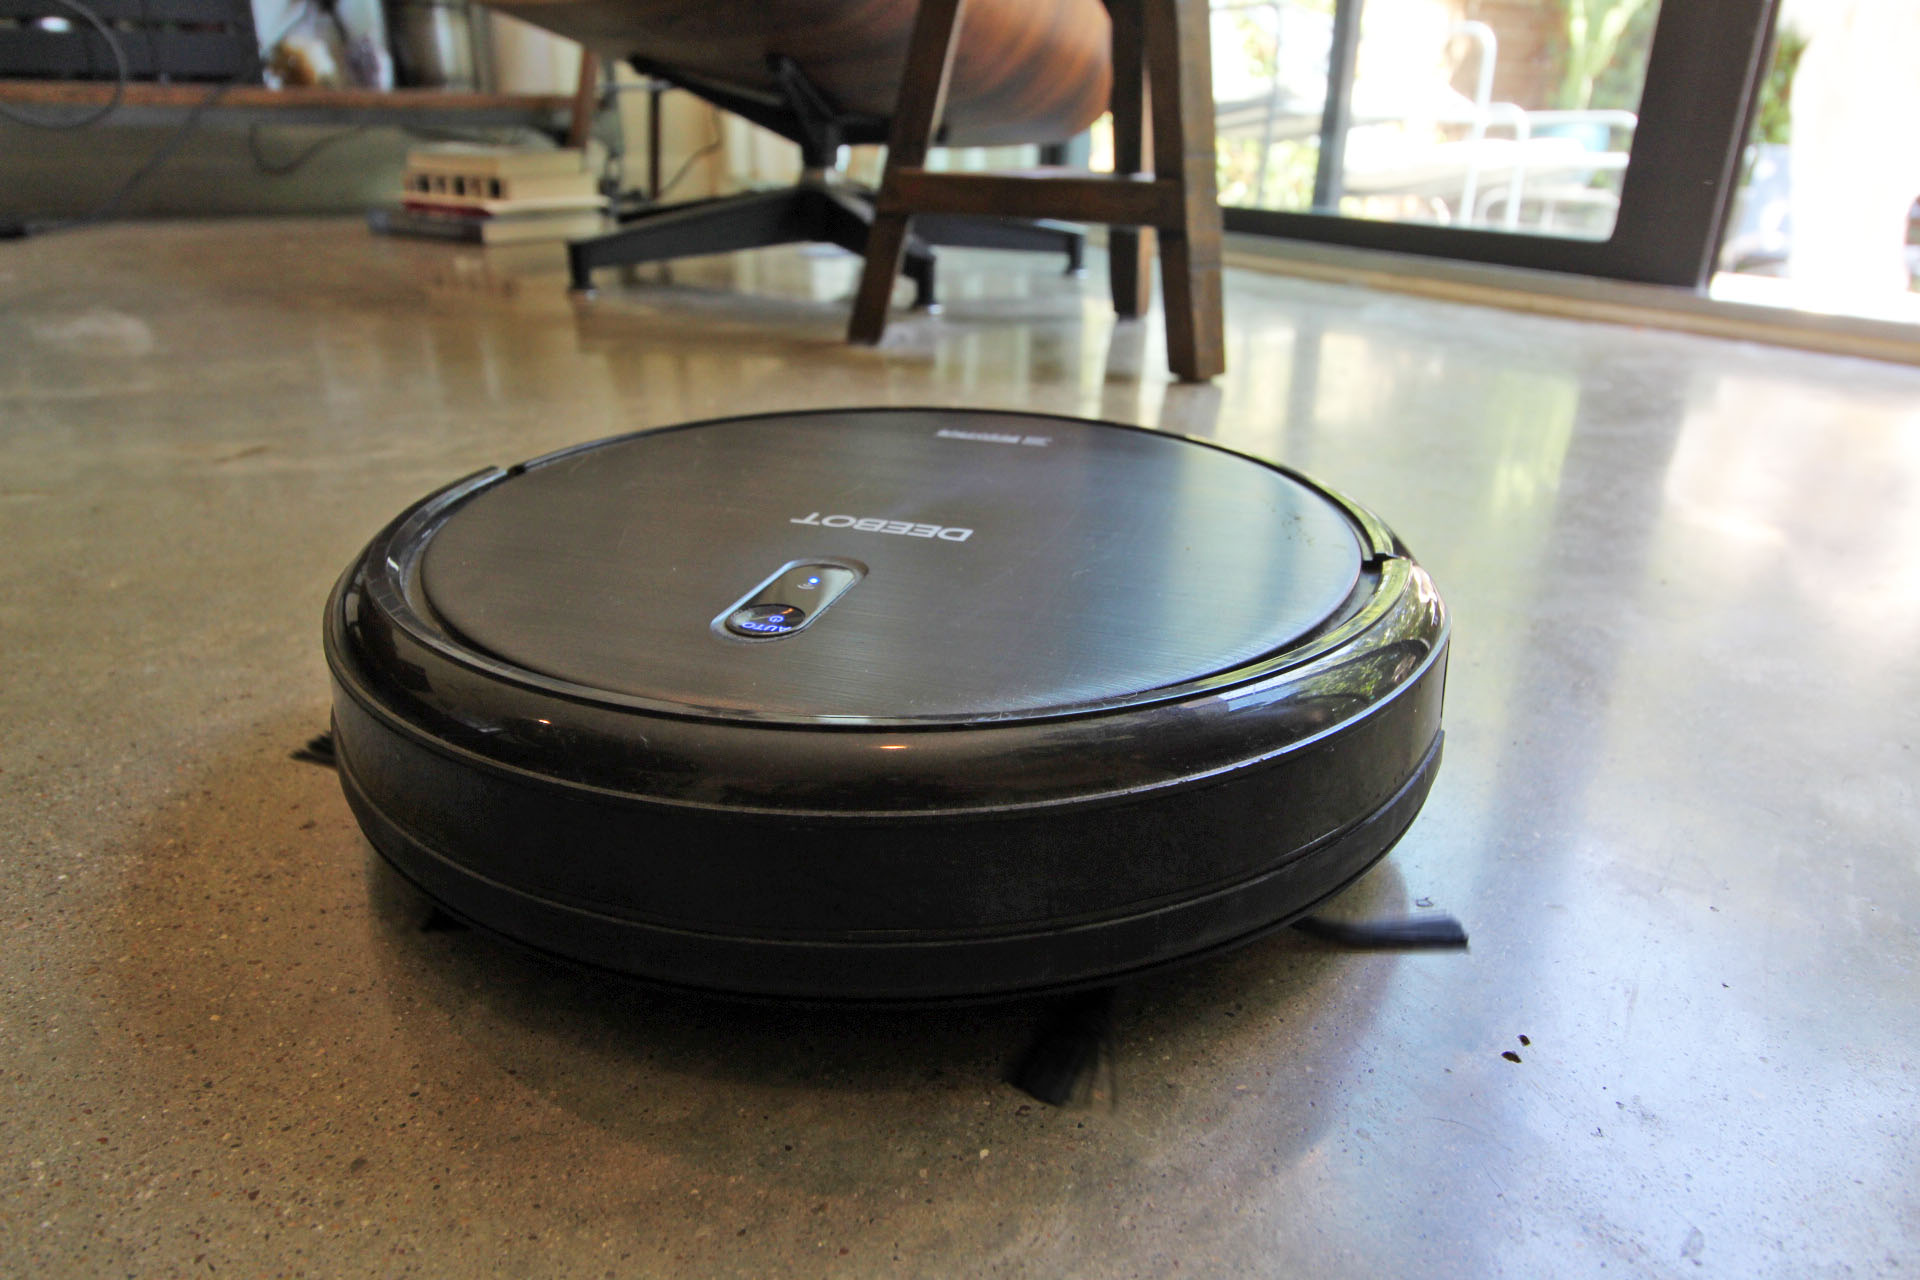 A robotic vacuum cleaning a polished concrete floor.